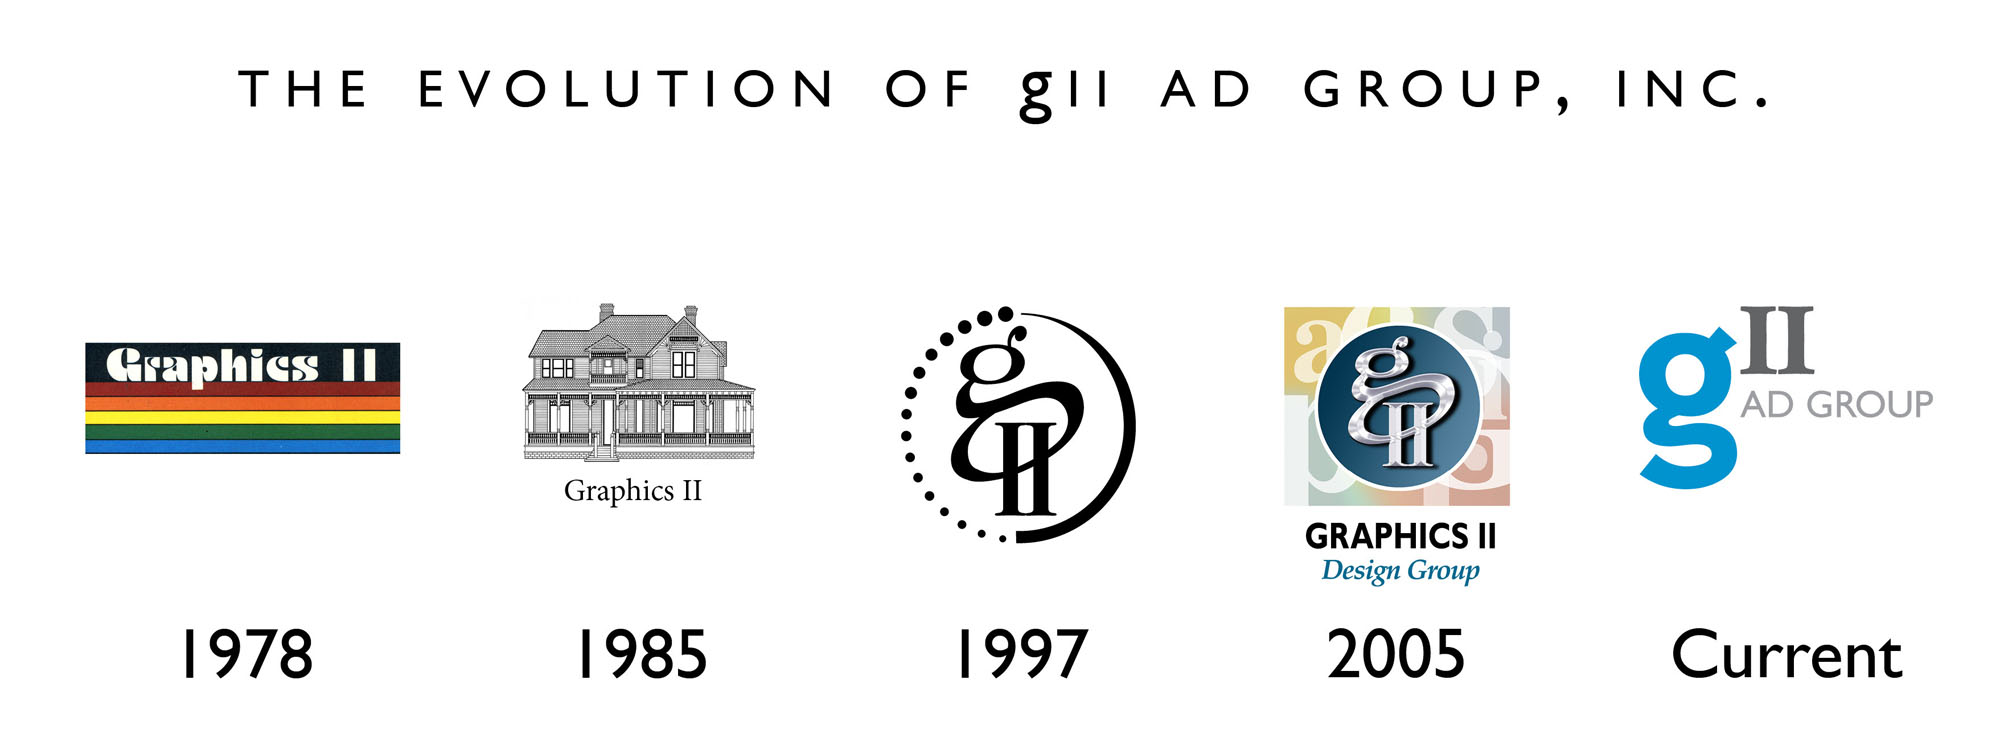 The evolution of gii ad group, inc